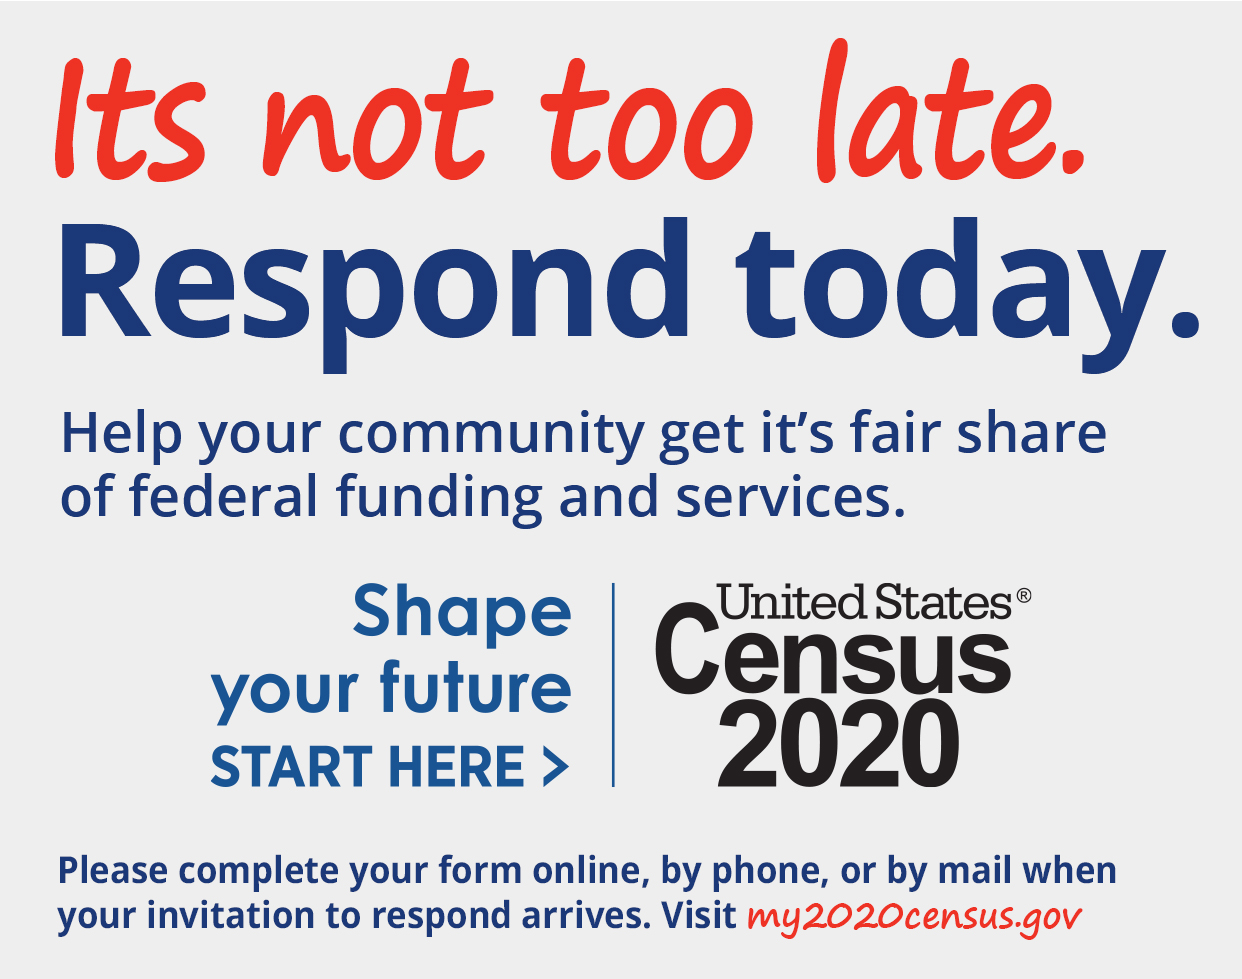 Its not too late, respond today. Help your community get its share of federal funding and services.